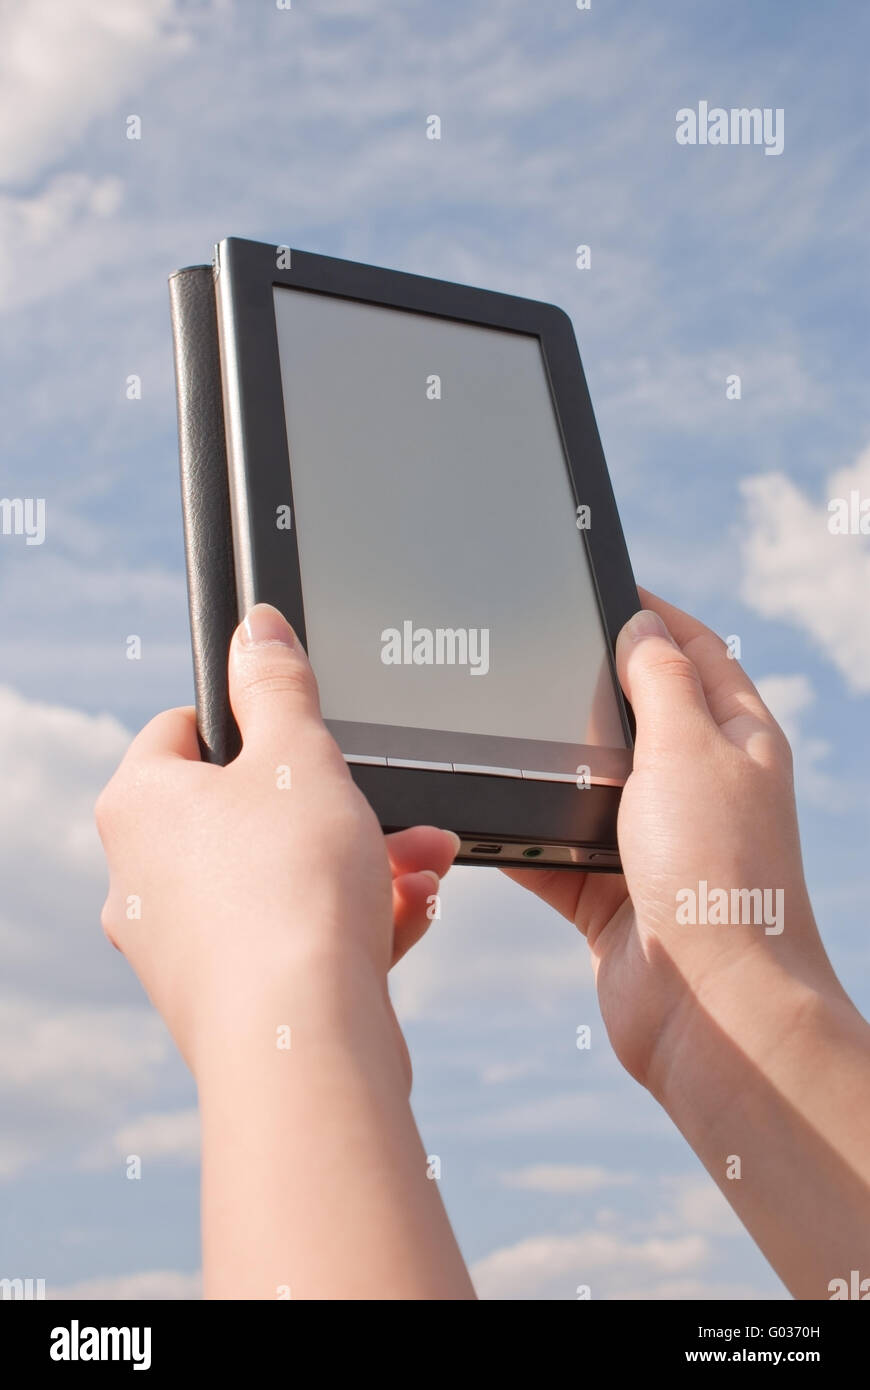 Hands hold electronic book reader against blue sky - Stock Image